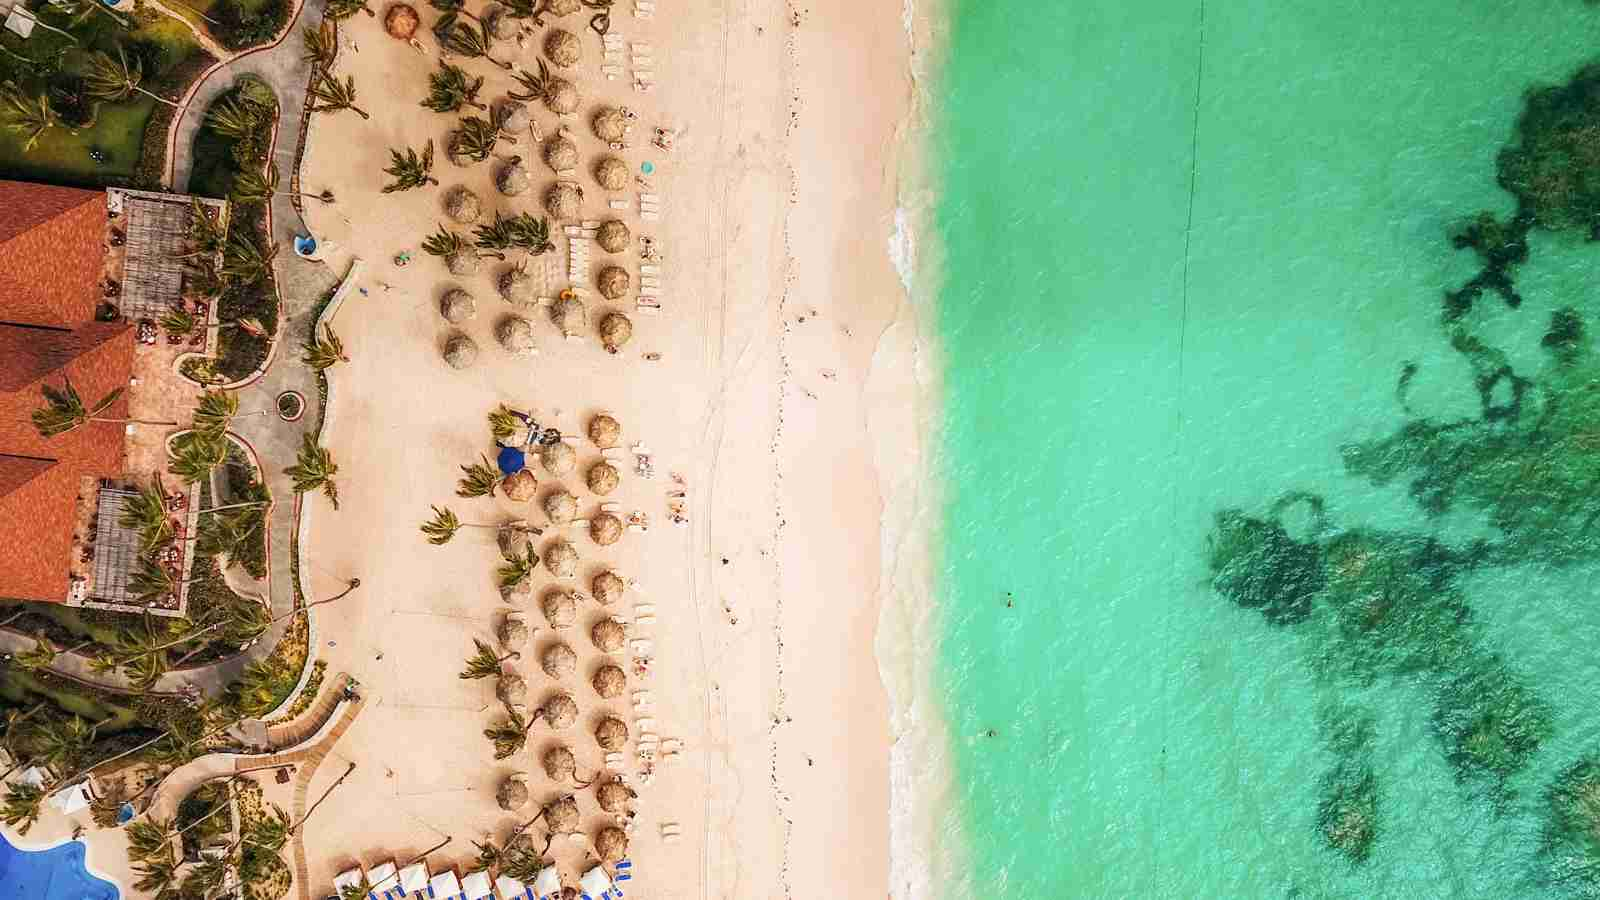 Punta Cana, Dominican Republic. (Photo by Justin Aikin via Unsplash)